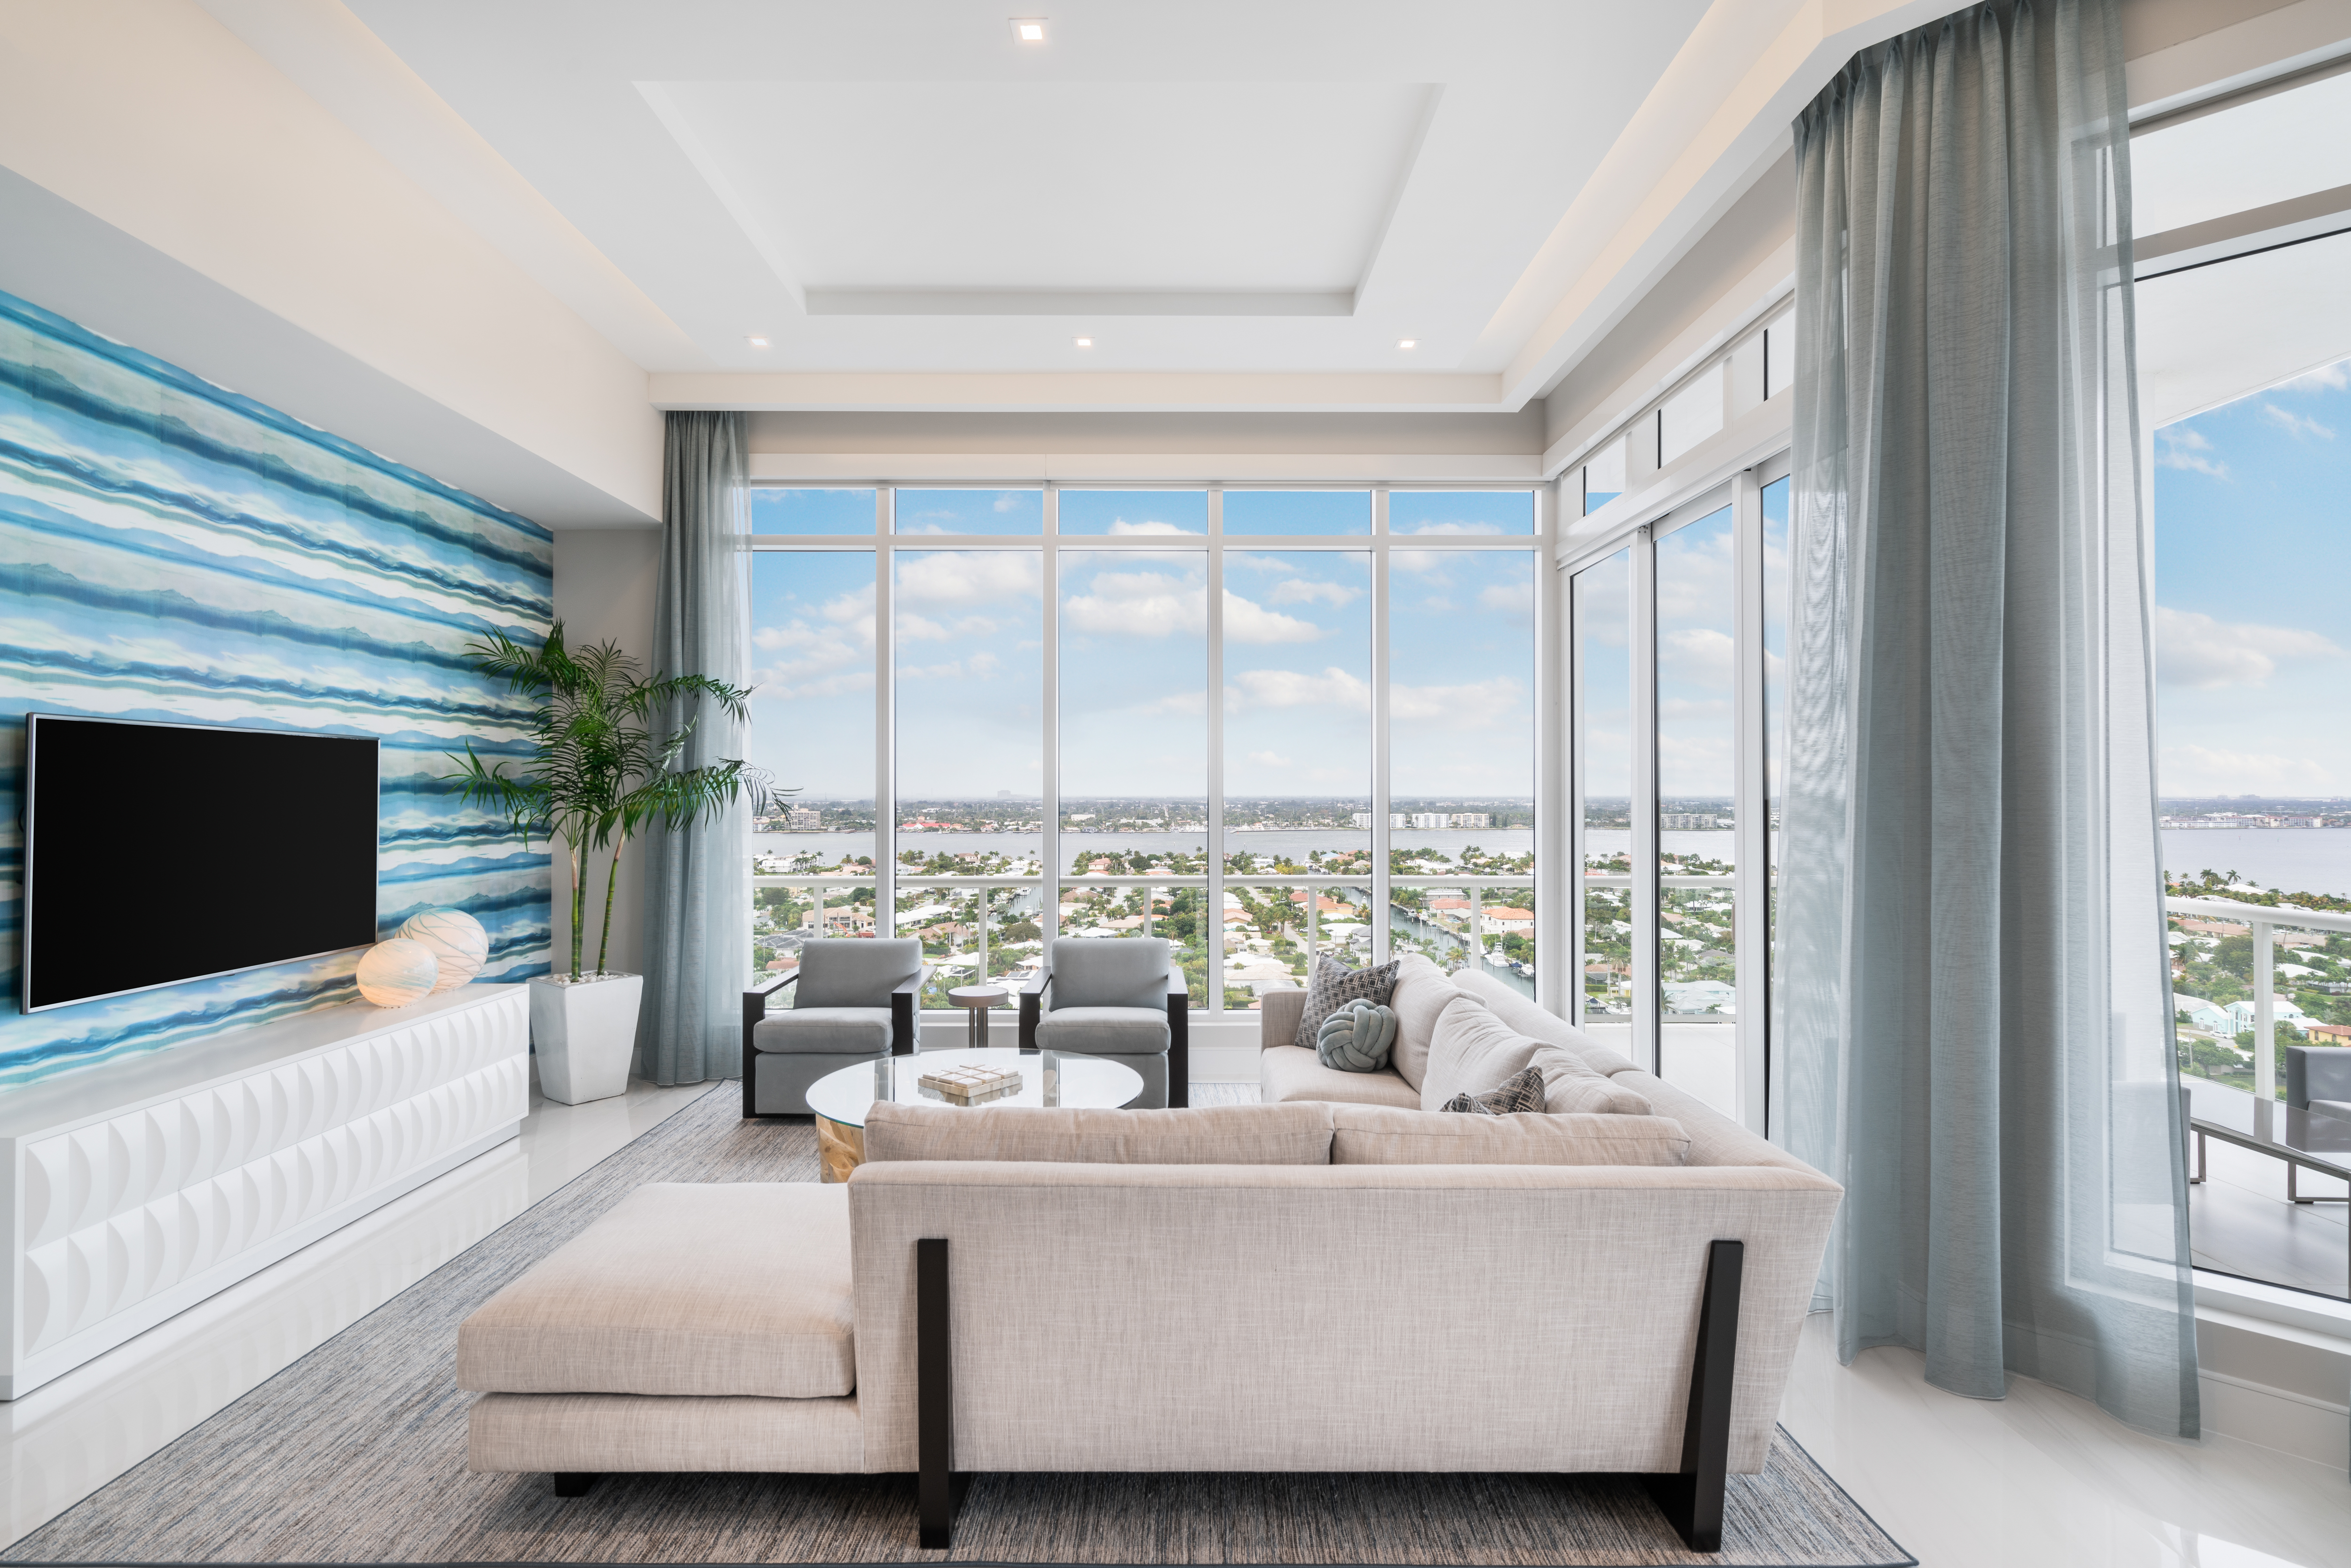 VistaBlue Singer Island, The Palm Beaches' First Luxury Oceanfront Condo Officially Opens